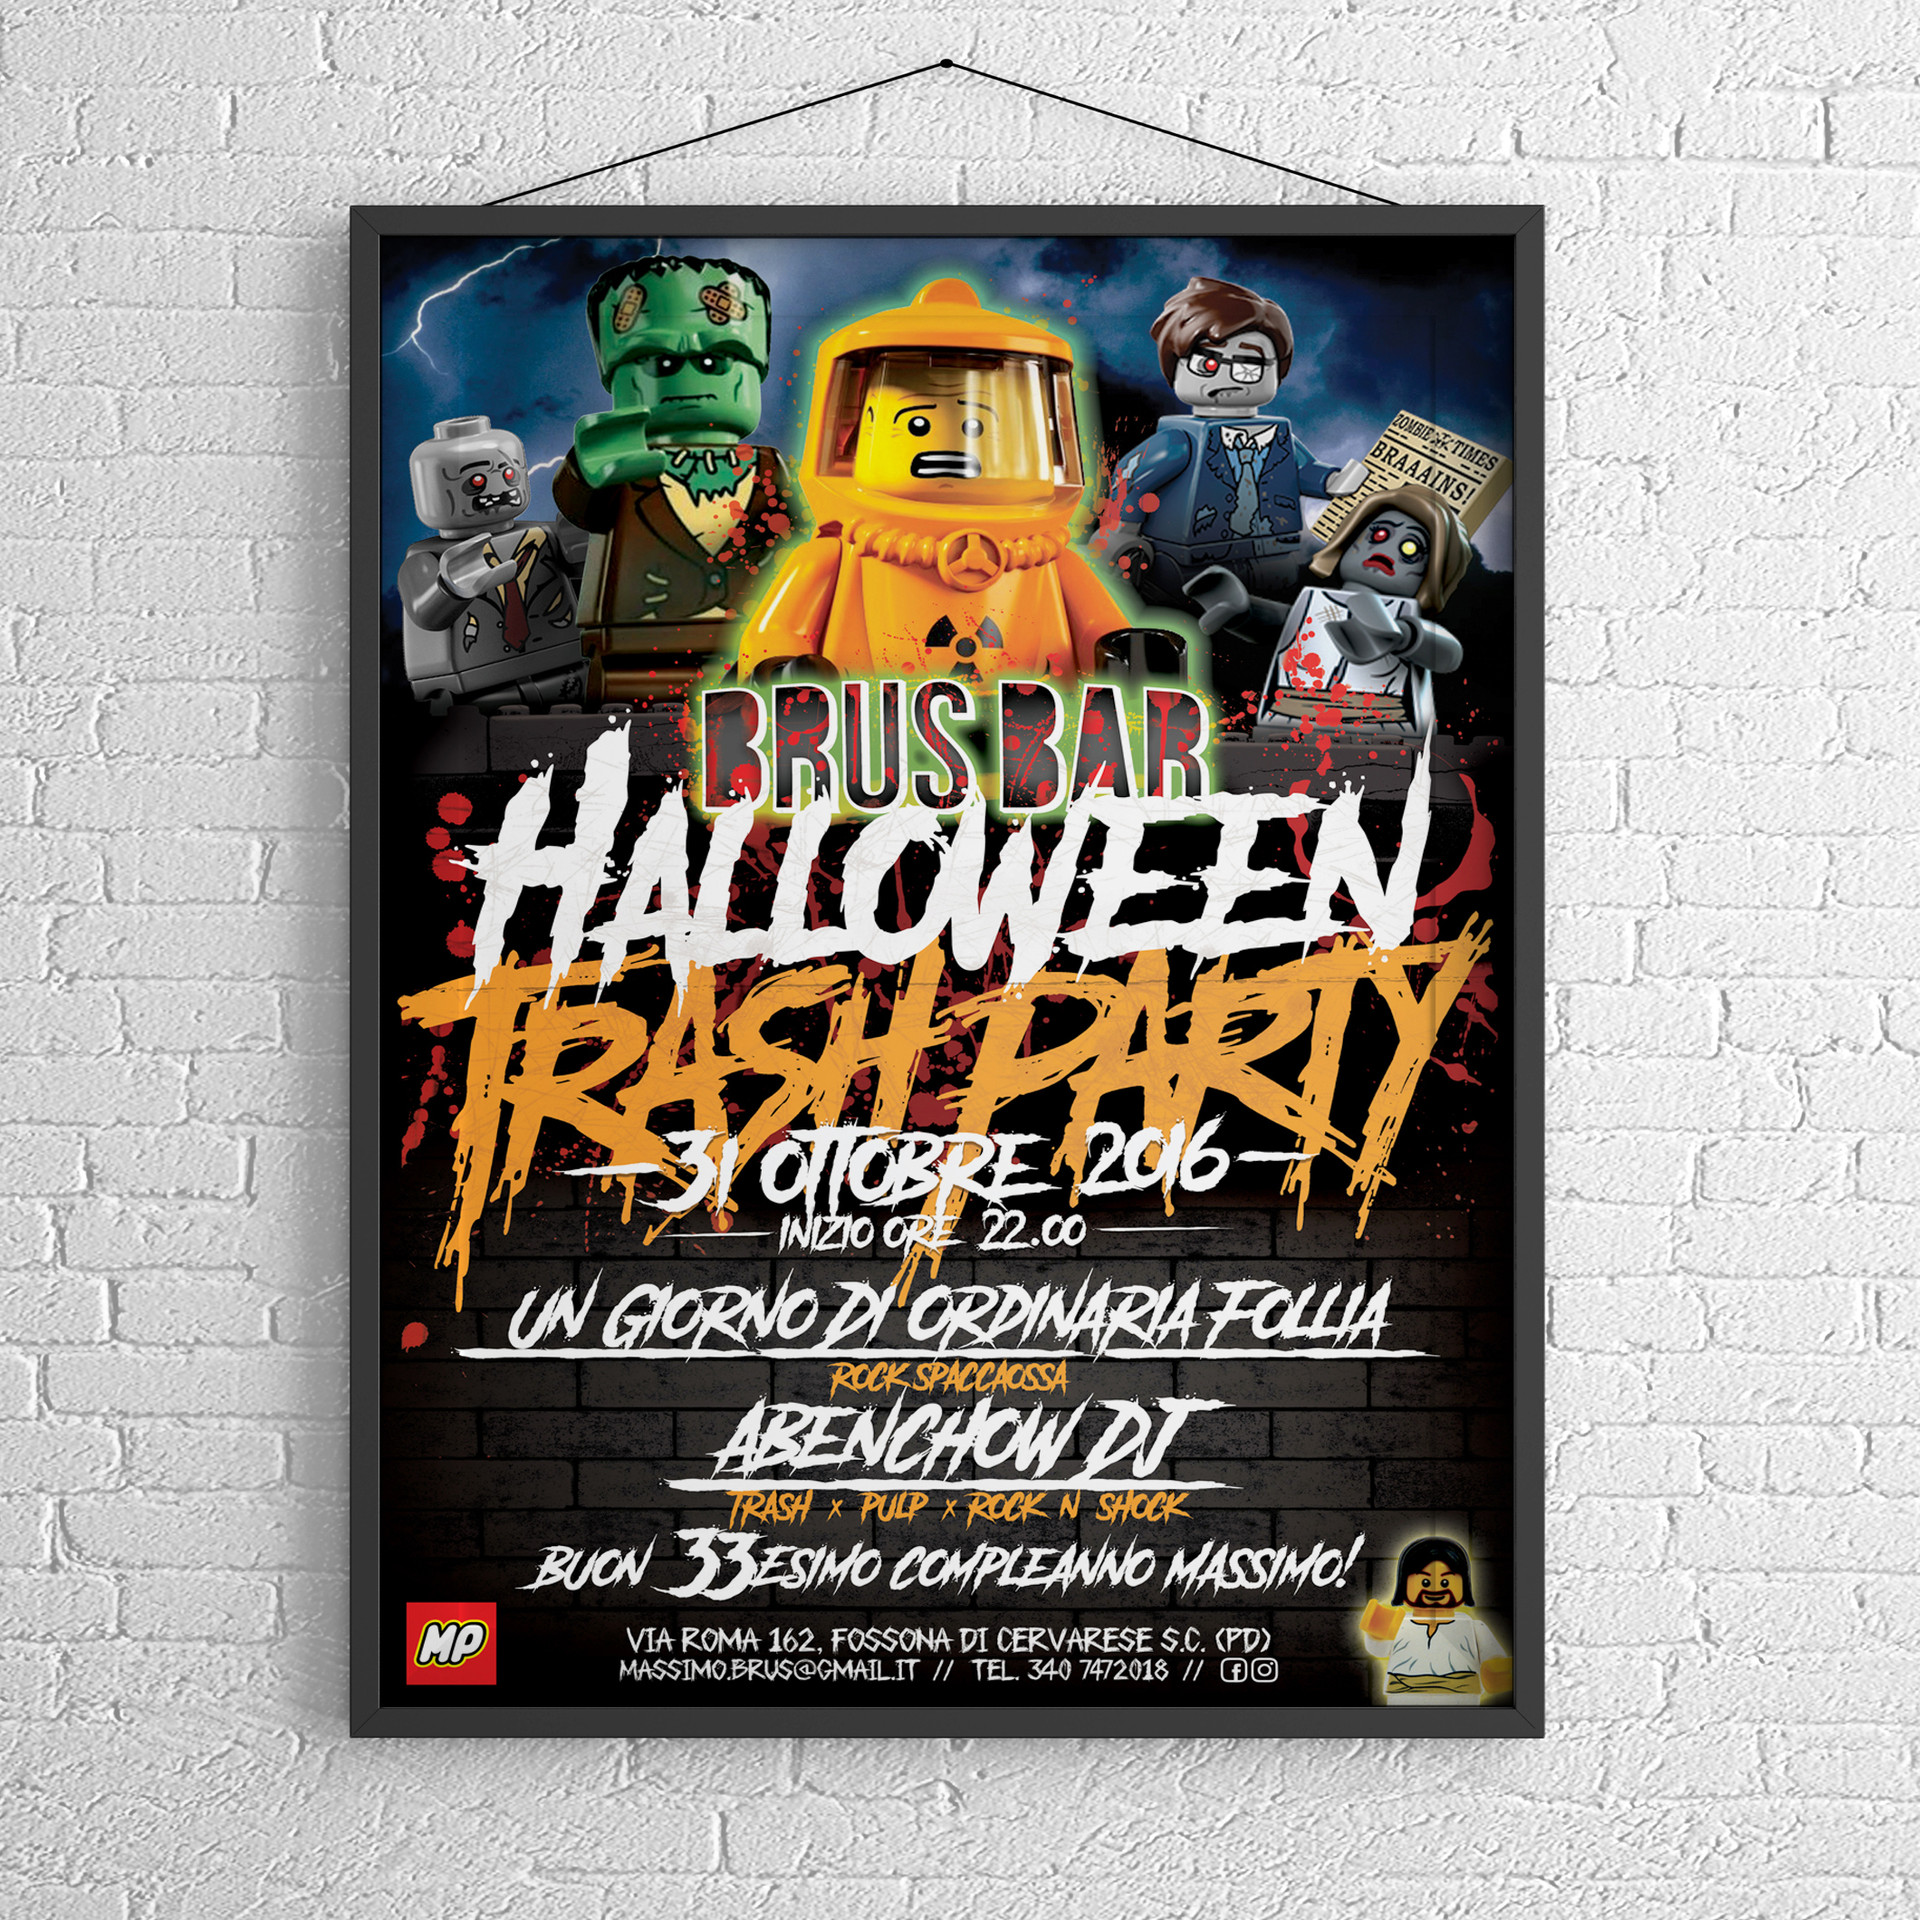 Brus Bar Halloween Trash Party 2016 Poster - MP Grafica